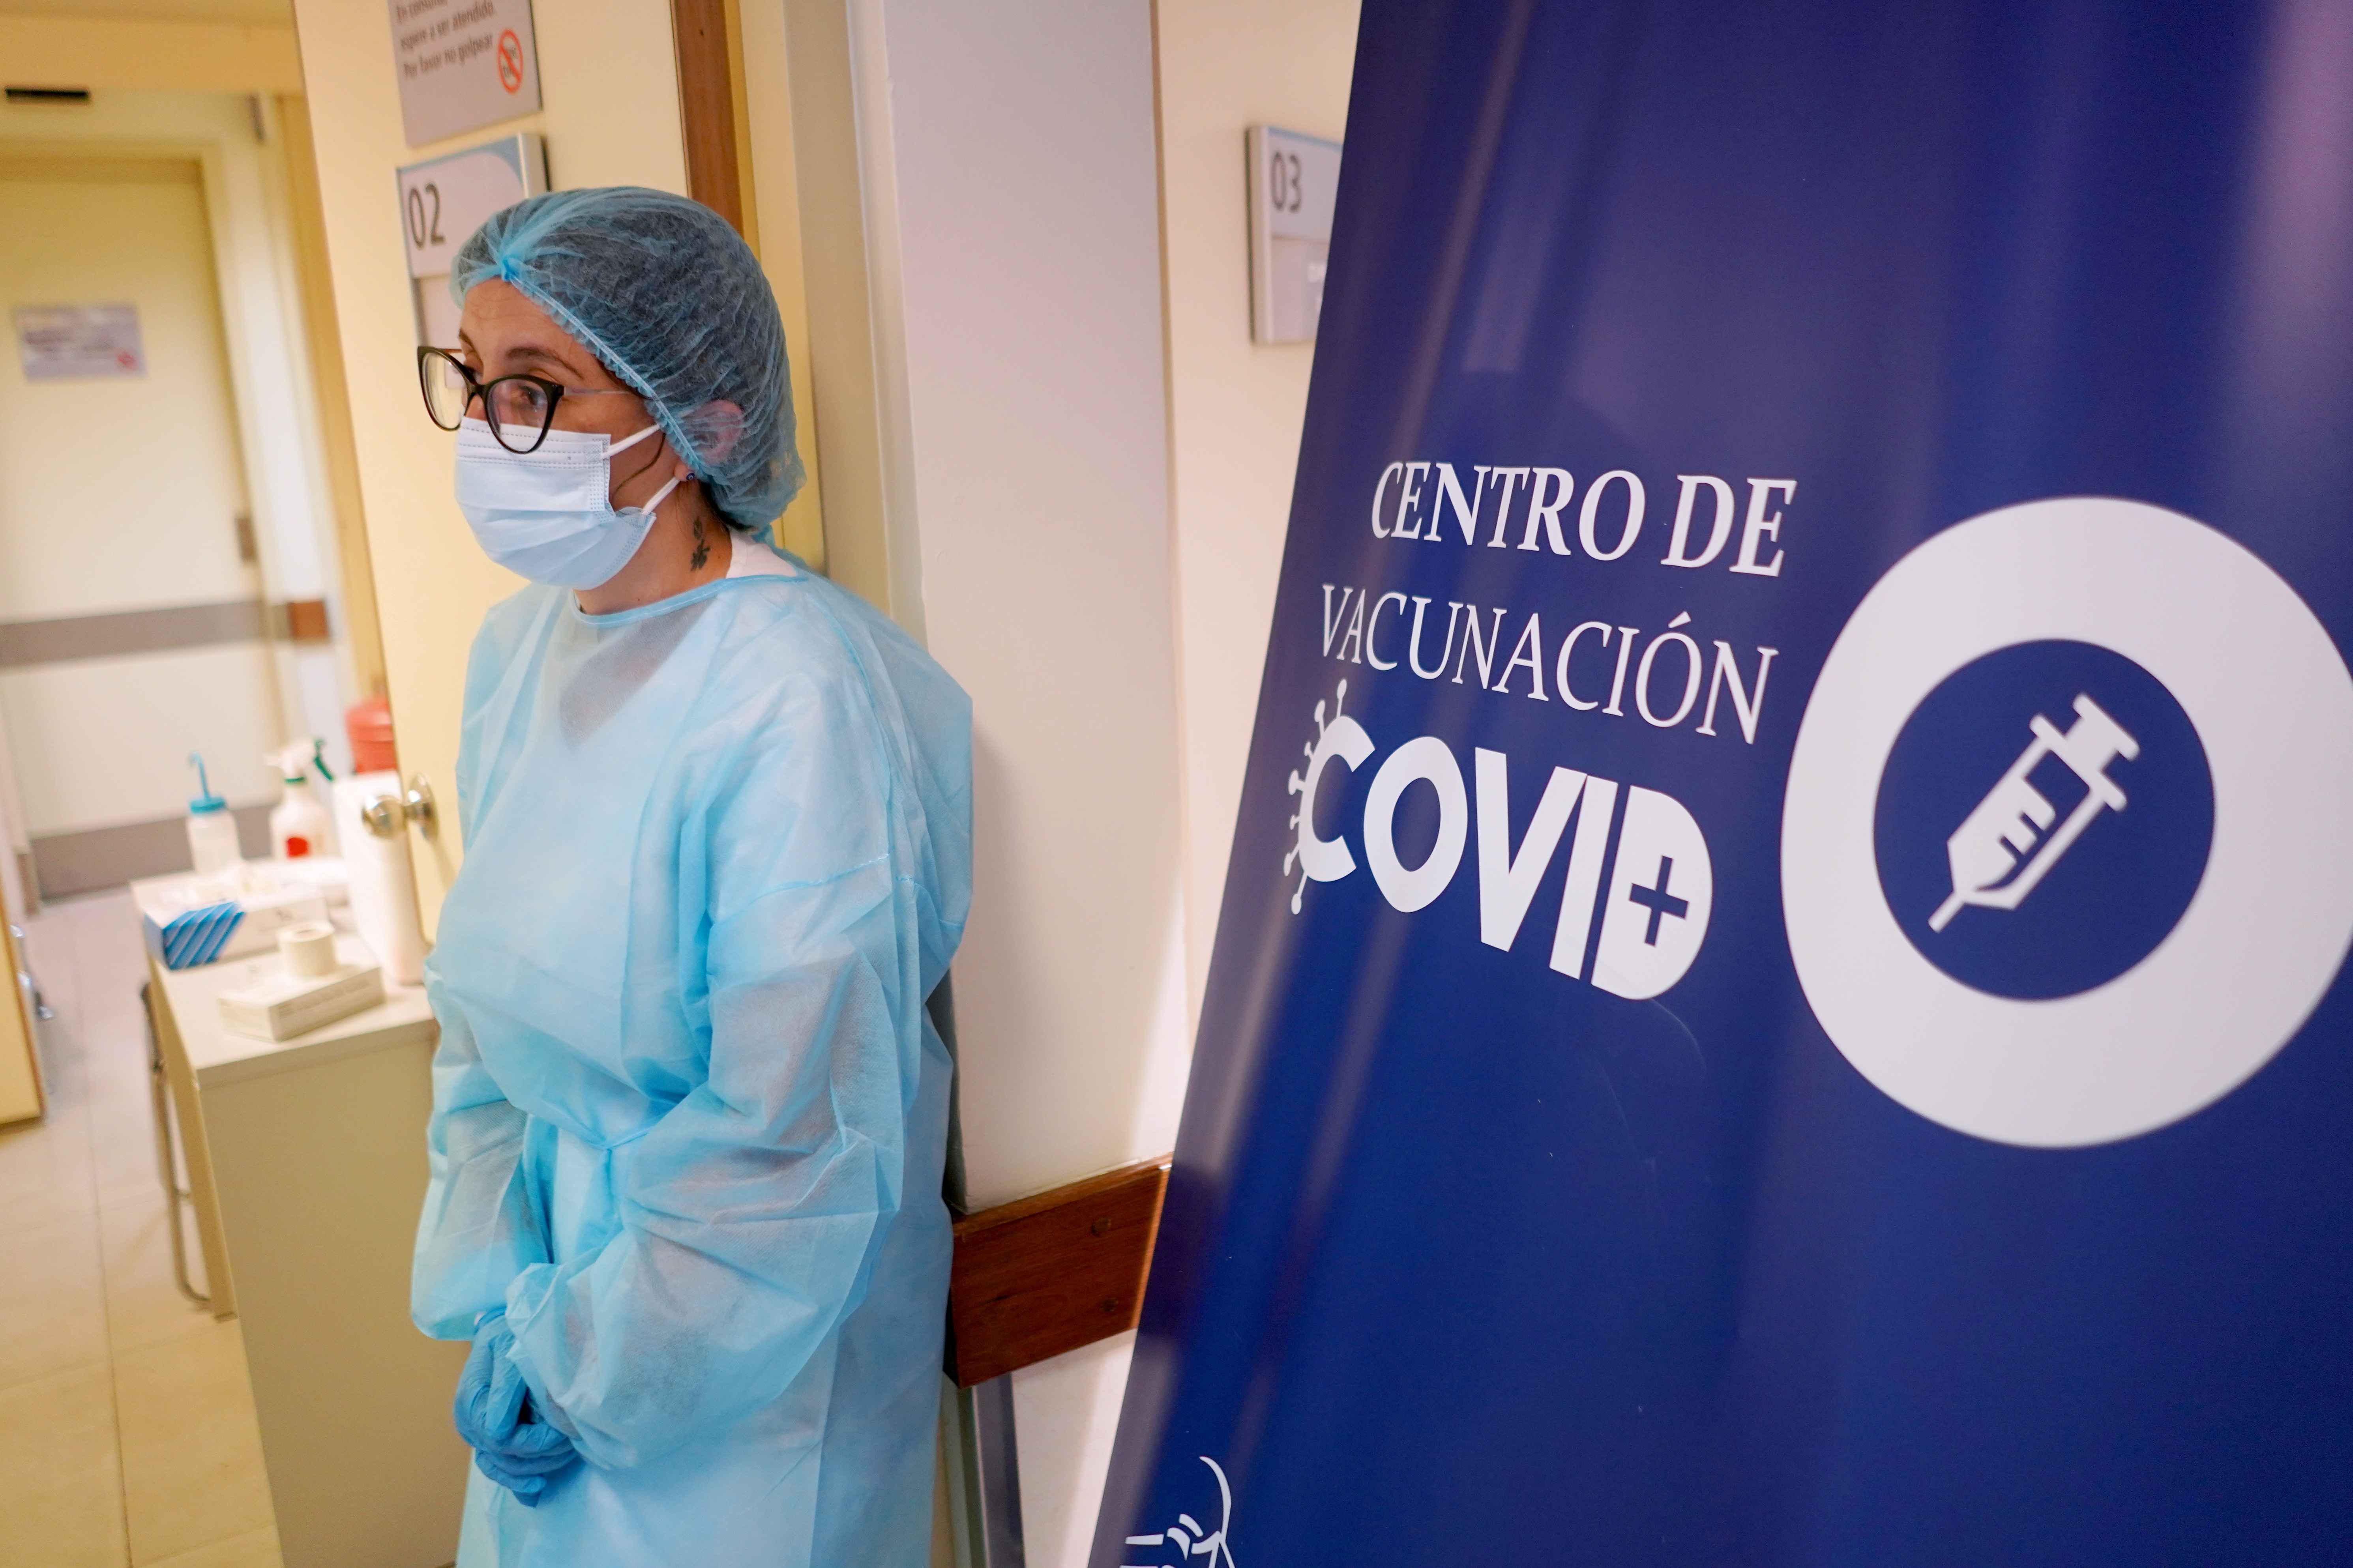 A healthcare worker stands during the first stage of COVID-19 vaccination plan, which aims to inoculate teachers, military personnel, firefighters and police officers, among other non medical essential workers, at a vaccination center in Antel Arena, Montevideo, Uruguay March 1, 2021. REUTERS/Mariana Greif